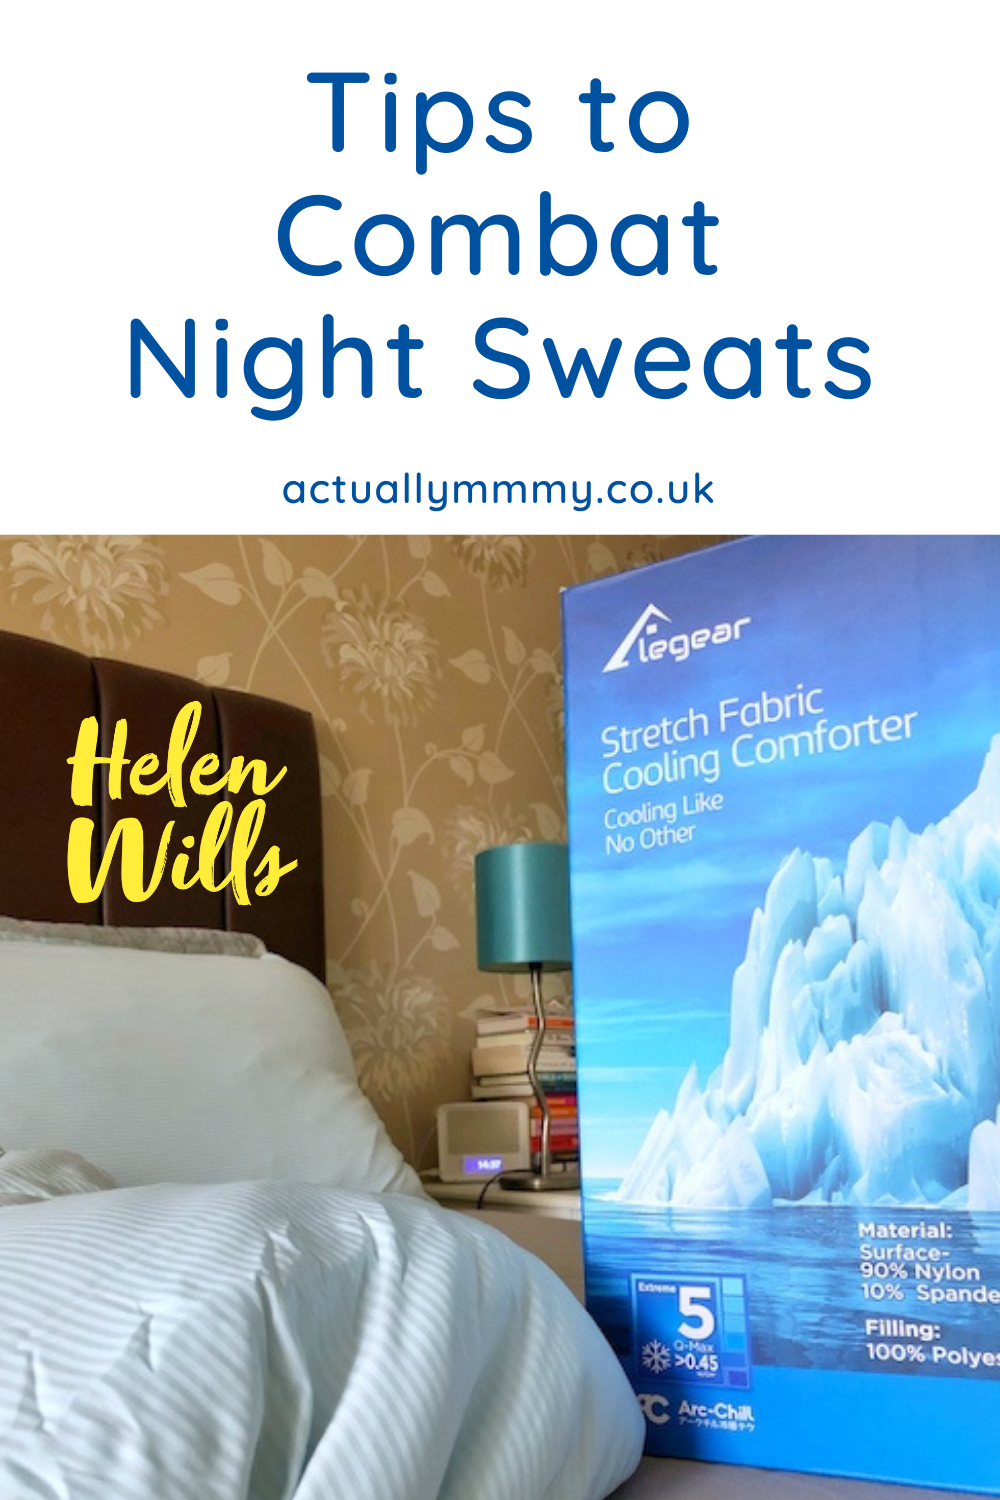 Help with night sweats during menopause and other conditions.